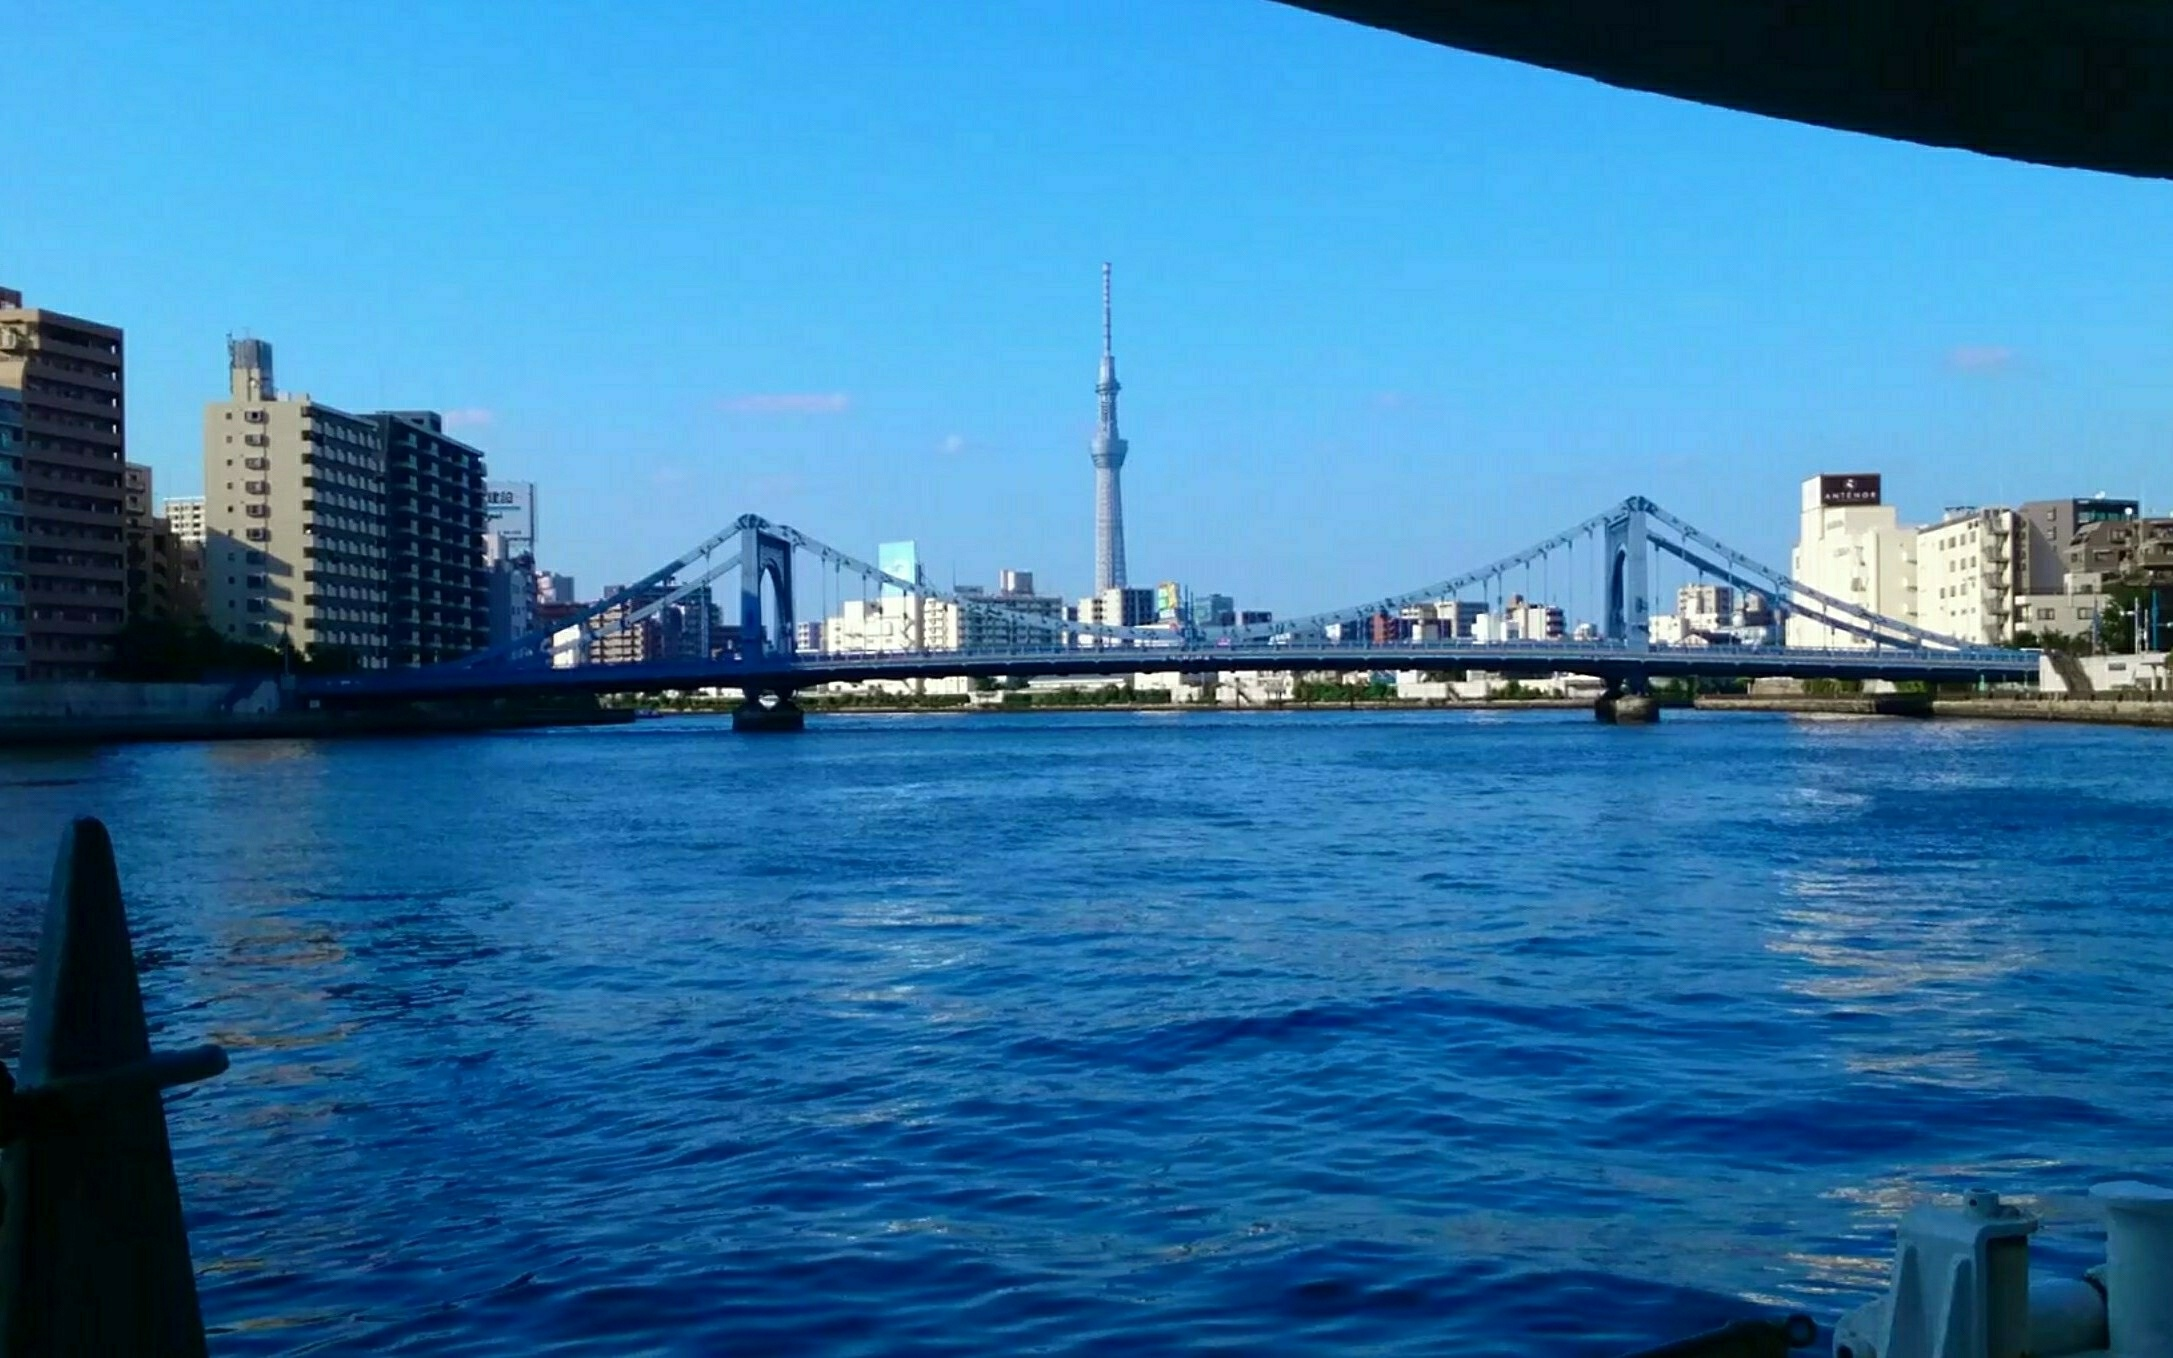 Tokyo Skytree came into sight after passing under many bridges!!